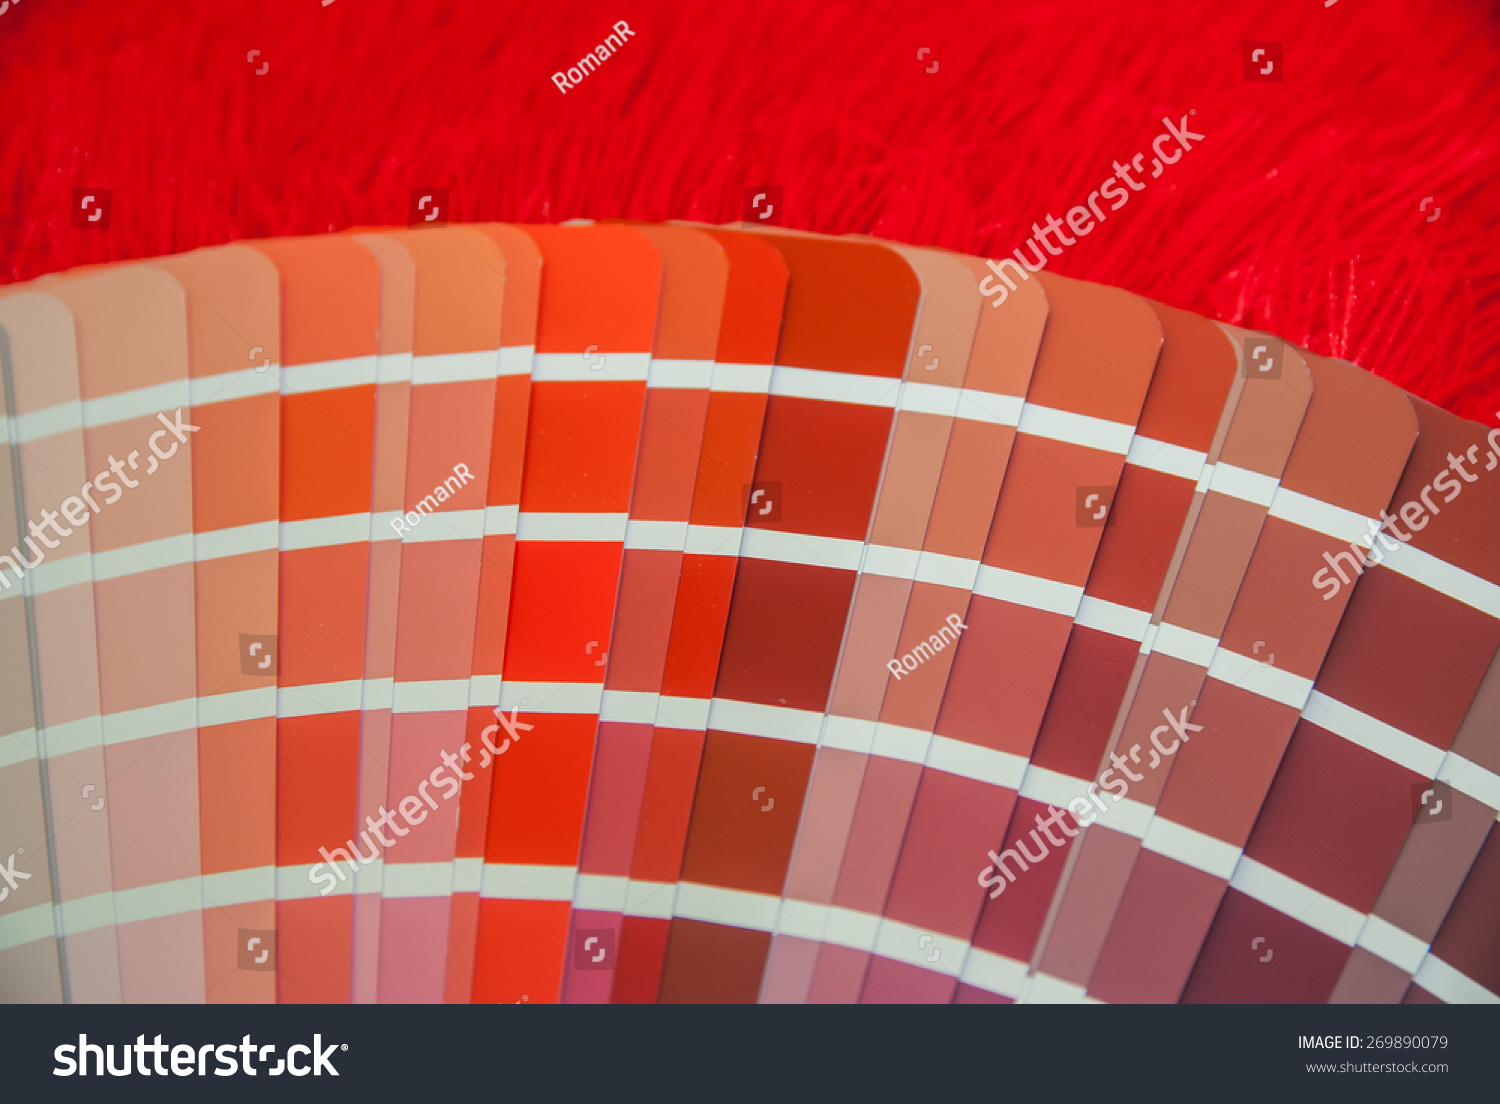 Uncategorized Red Color Pallette red color palette guide printing industry stock photo 269890079 for isolated